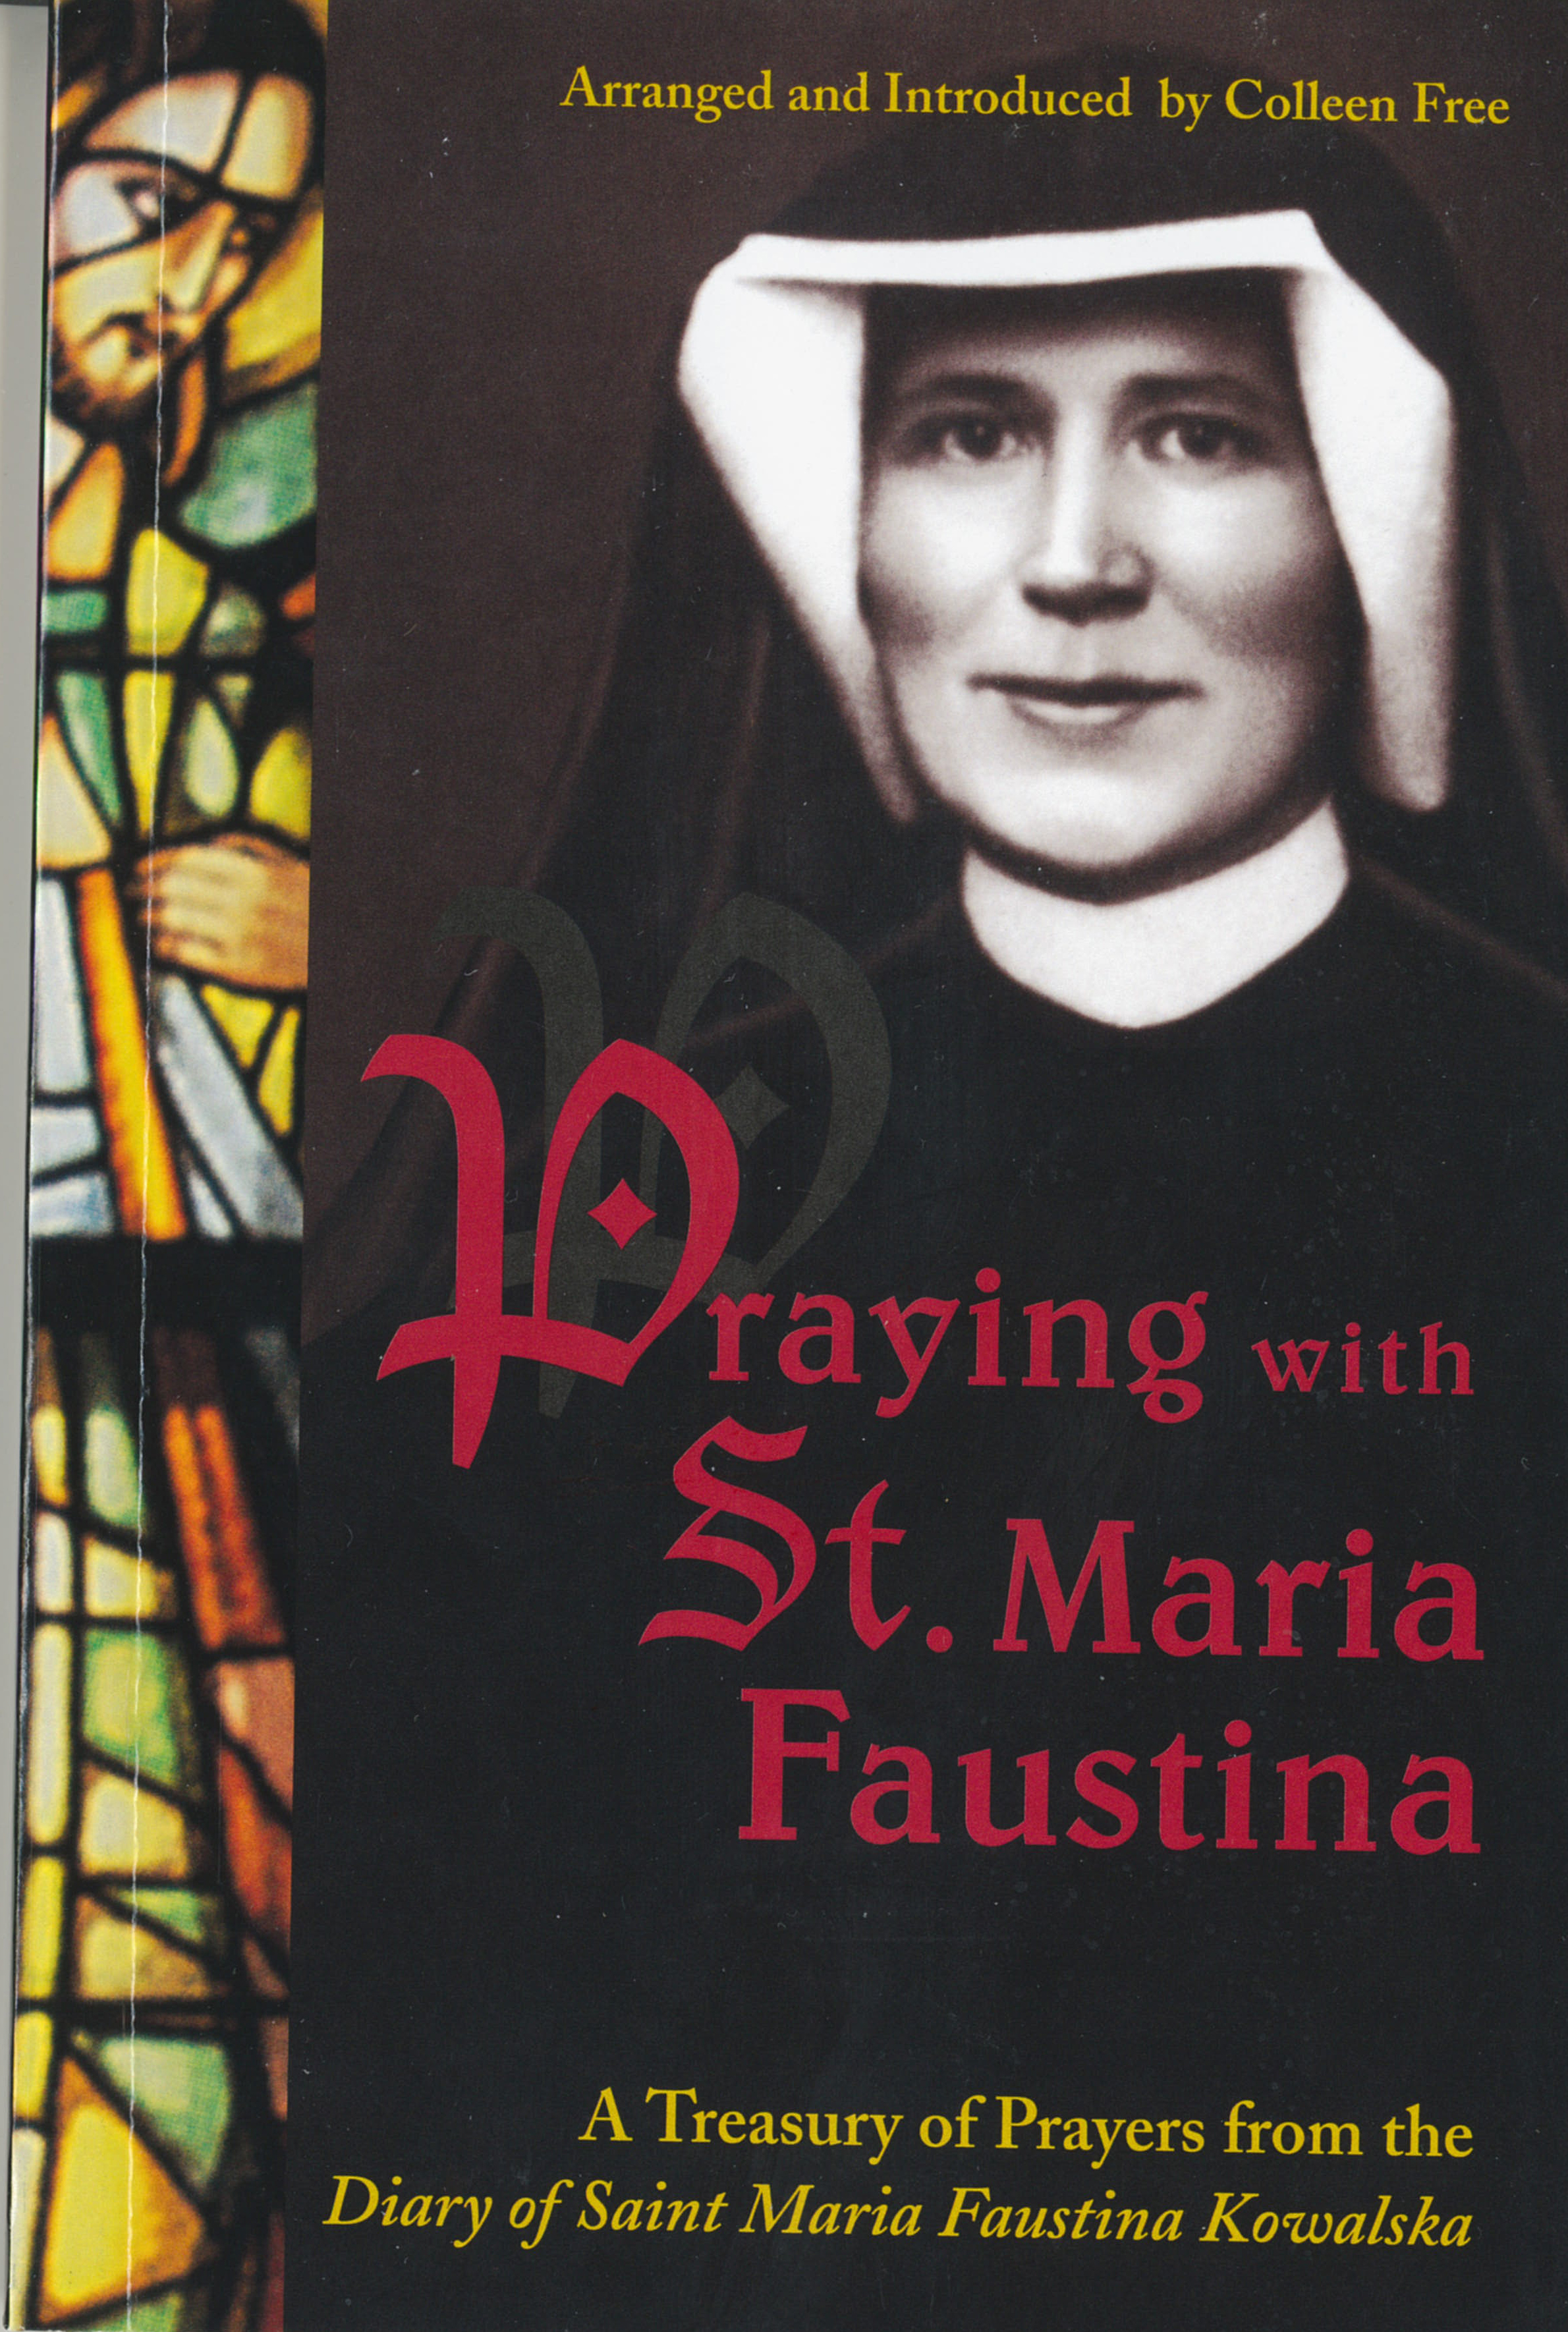 Praying with St. Maria Faustina: A Treasury of Prayers from the Diary of St. Maria Faustina Kowalska by Colleen Free